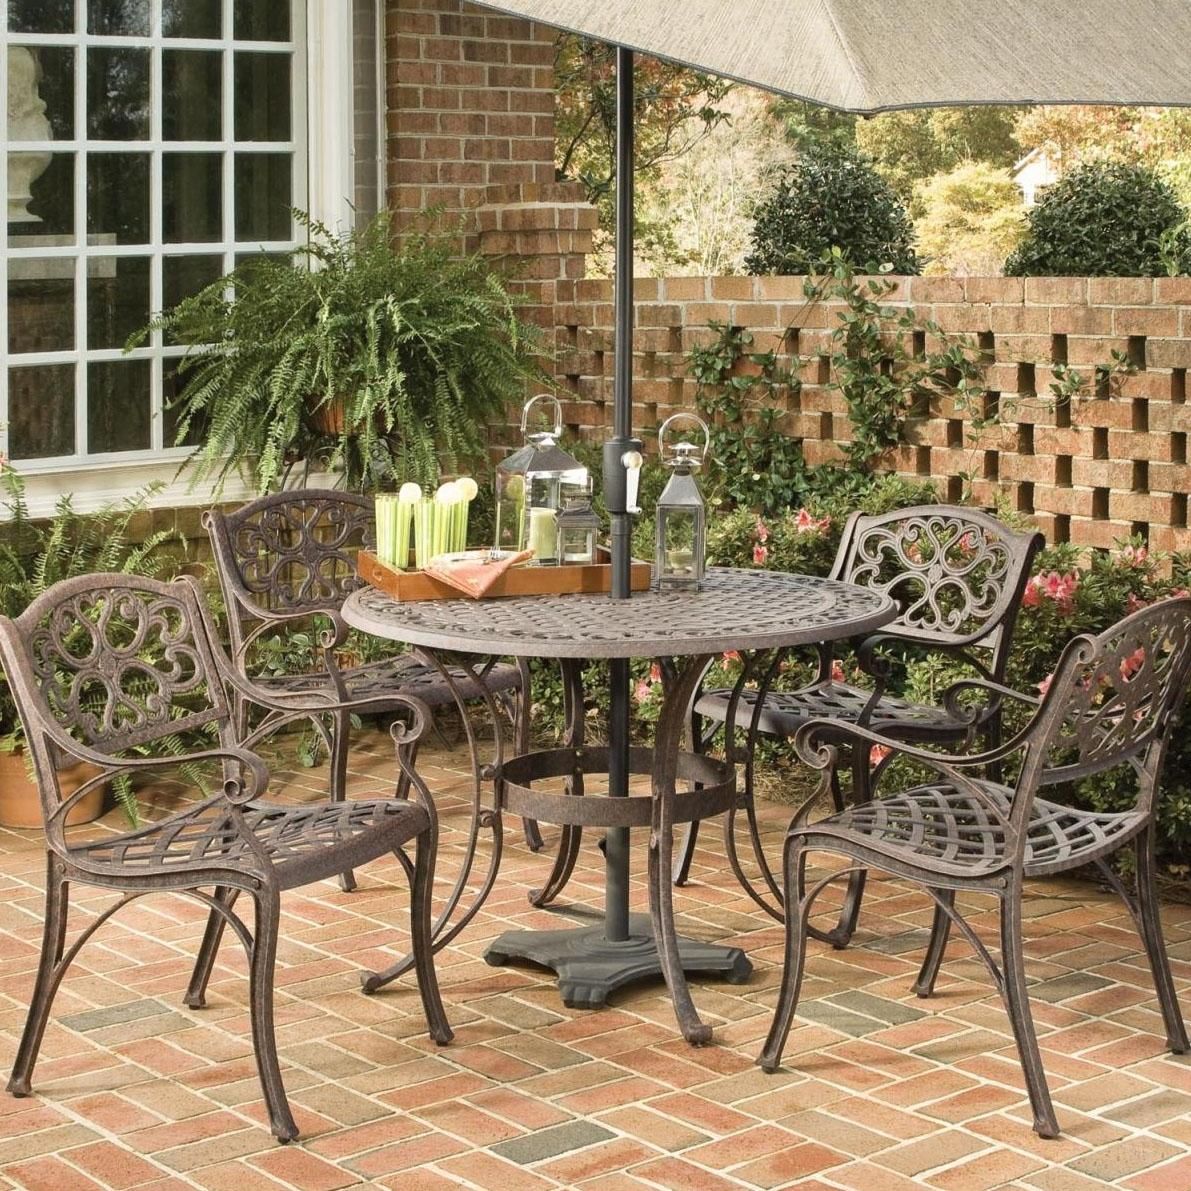 Kmart Patio Dining Set Almirah Beds Wardrobes And Furniture